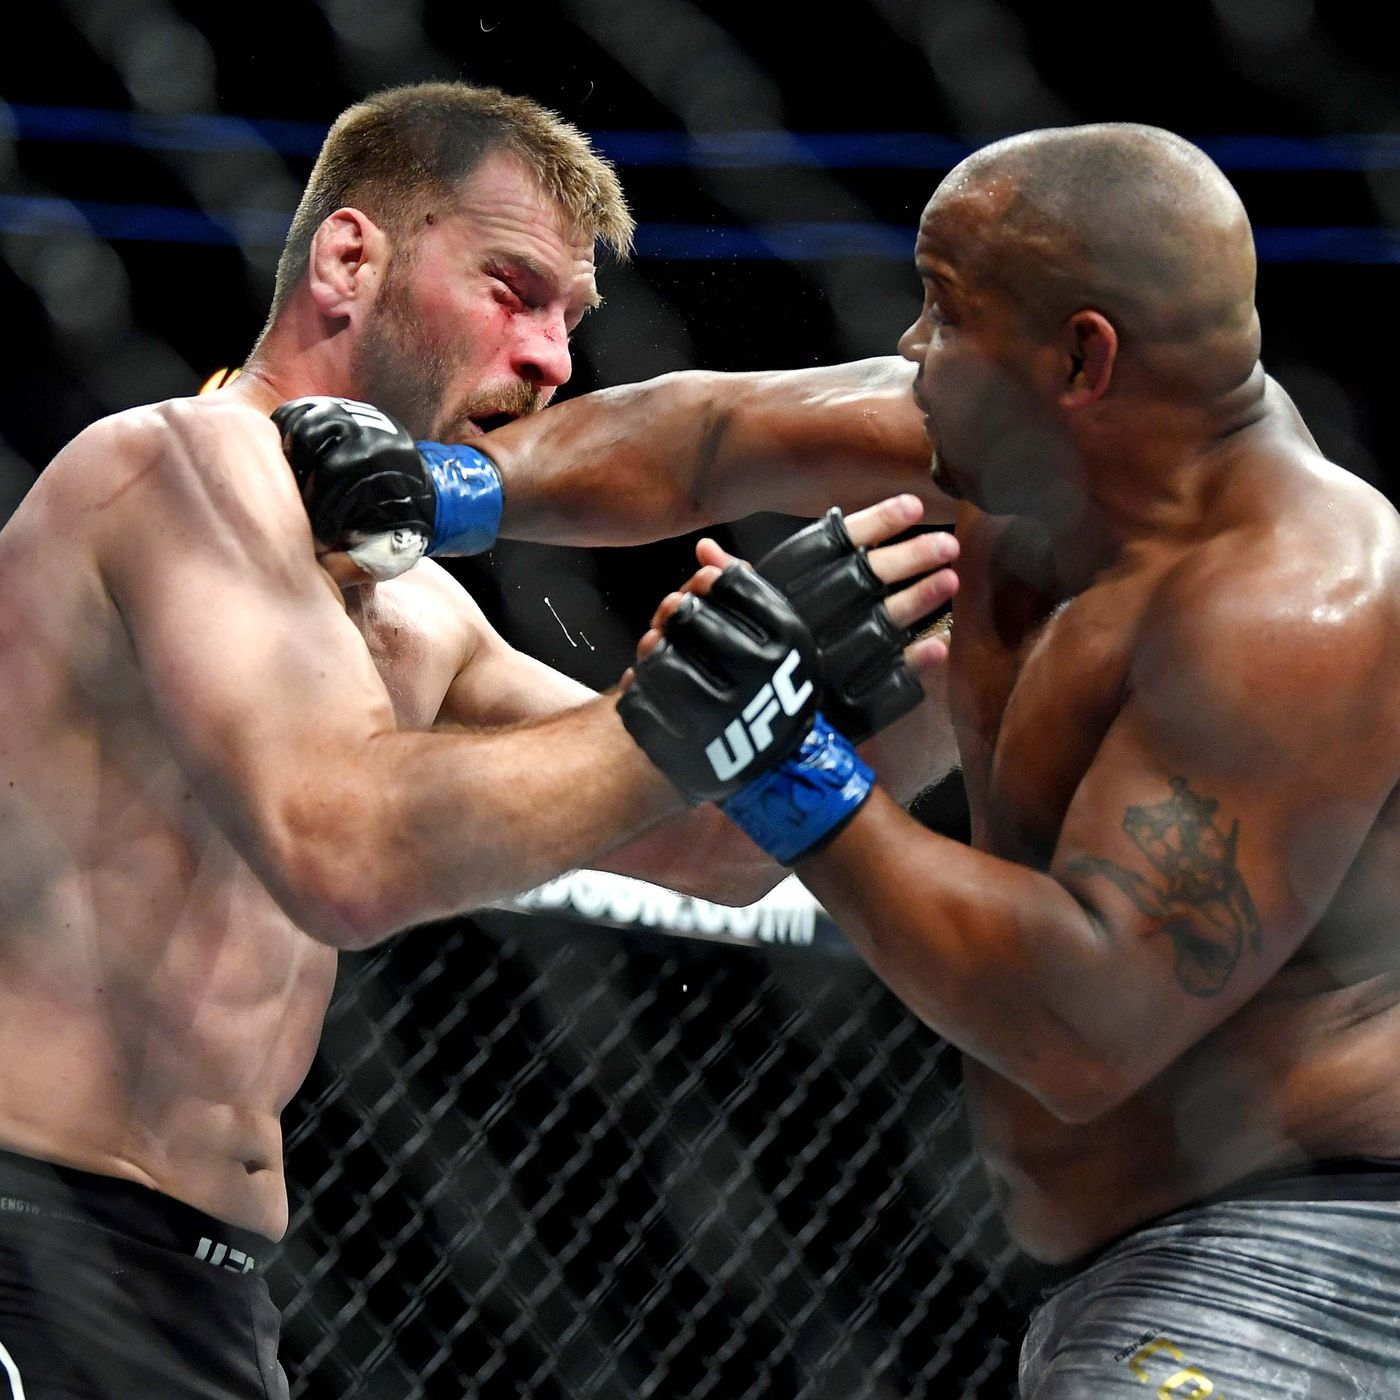 UFC 226 video recap: Daniel Cormier knocks out Stipe Miocic